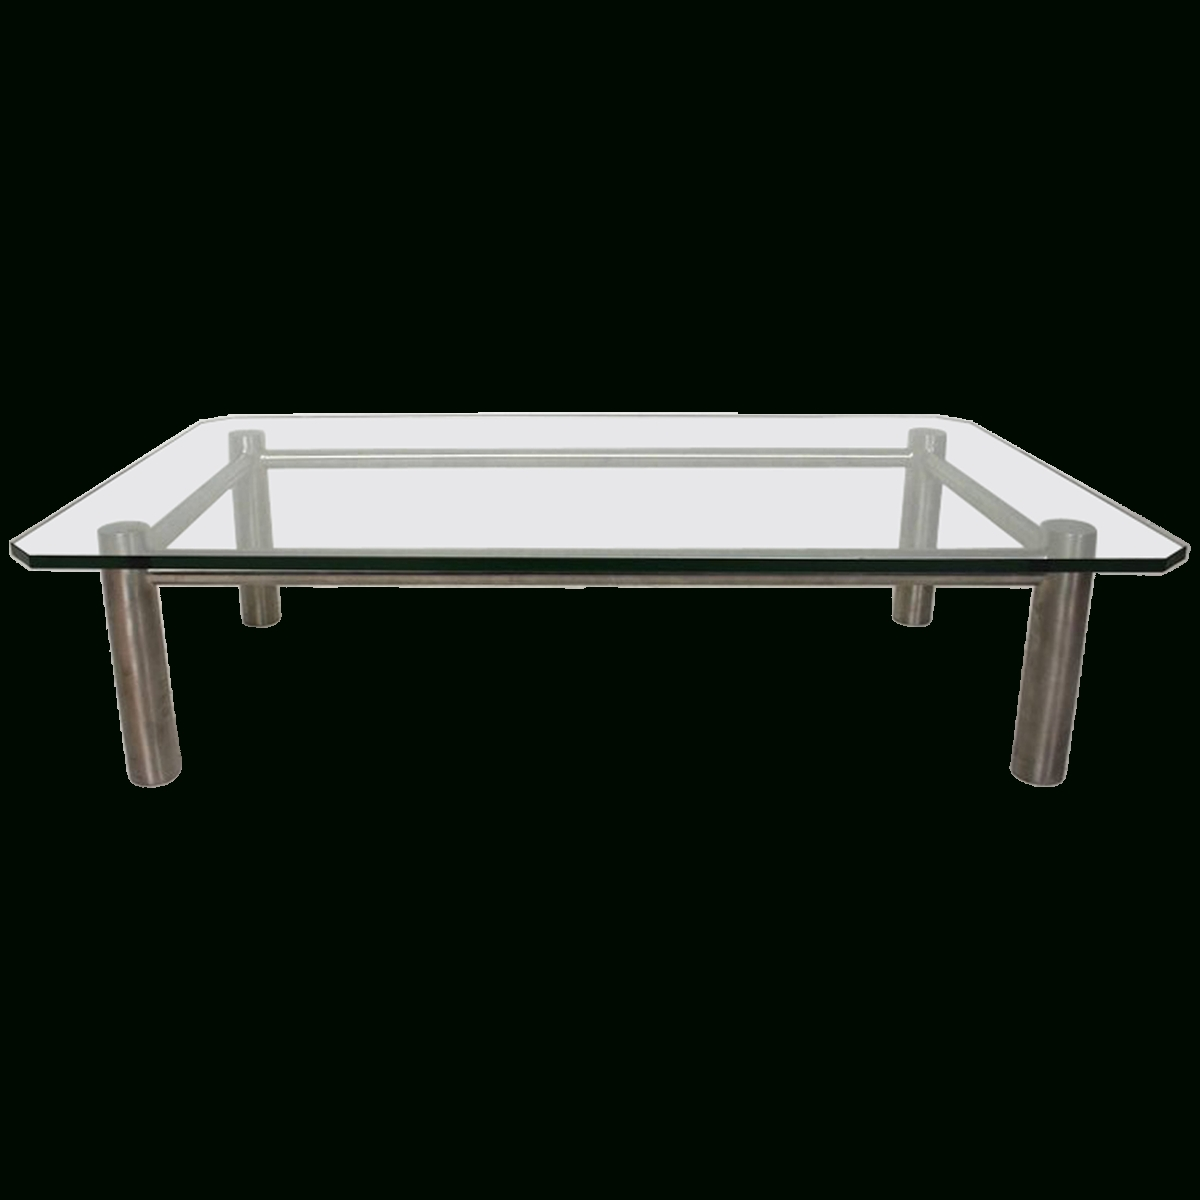 Viyet – Designer Furniture – Tables – Benchmark Vintage Stainless With Regard To Fashionable Steel And Glass Coffee Tables (View 18 of 20)